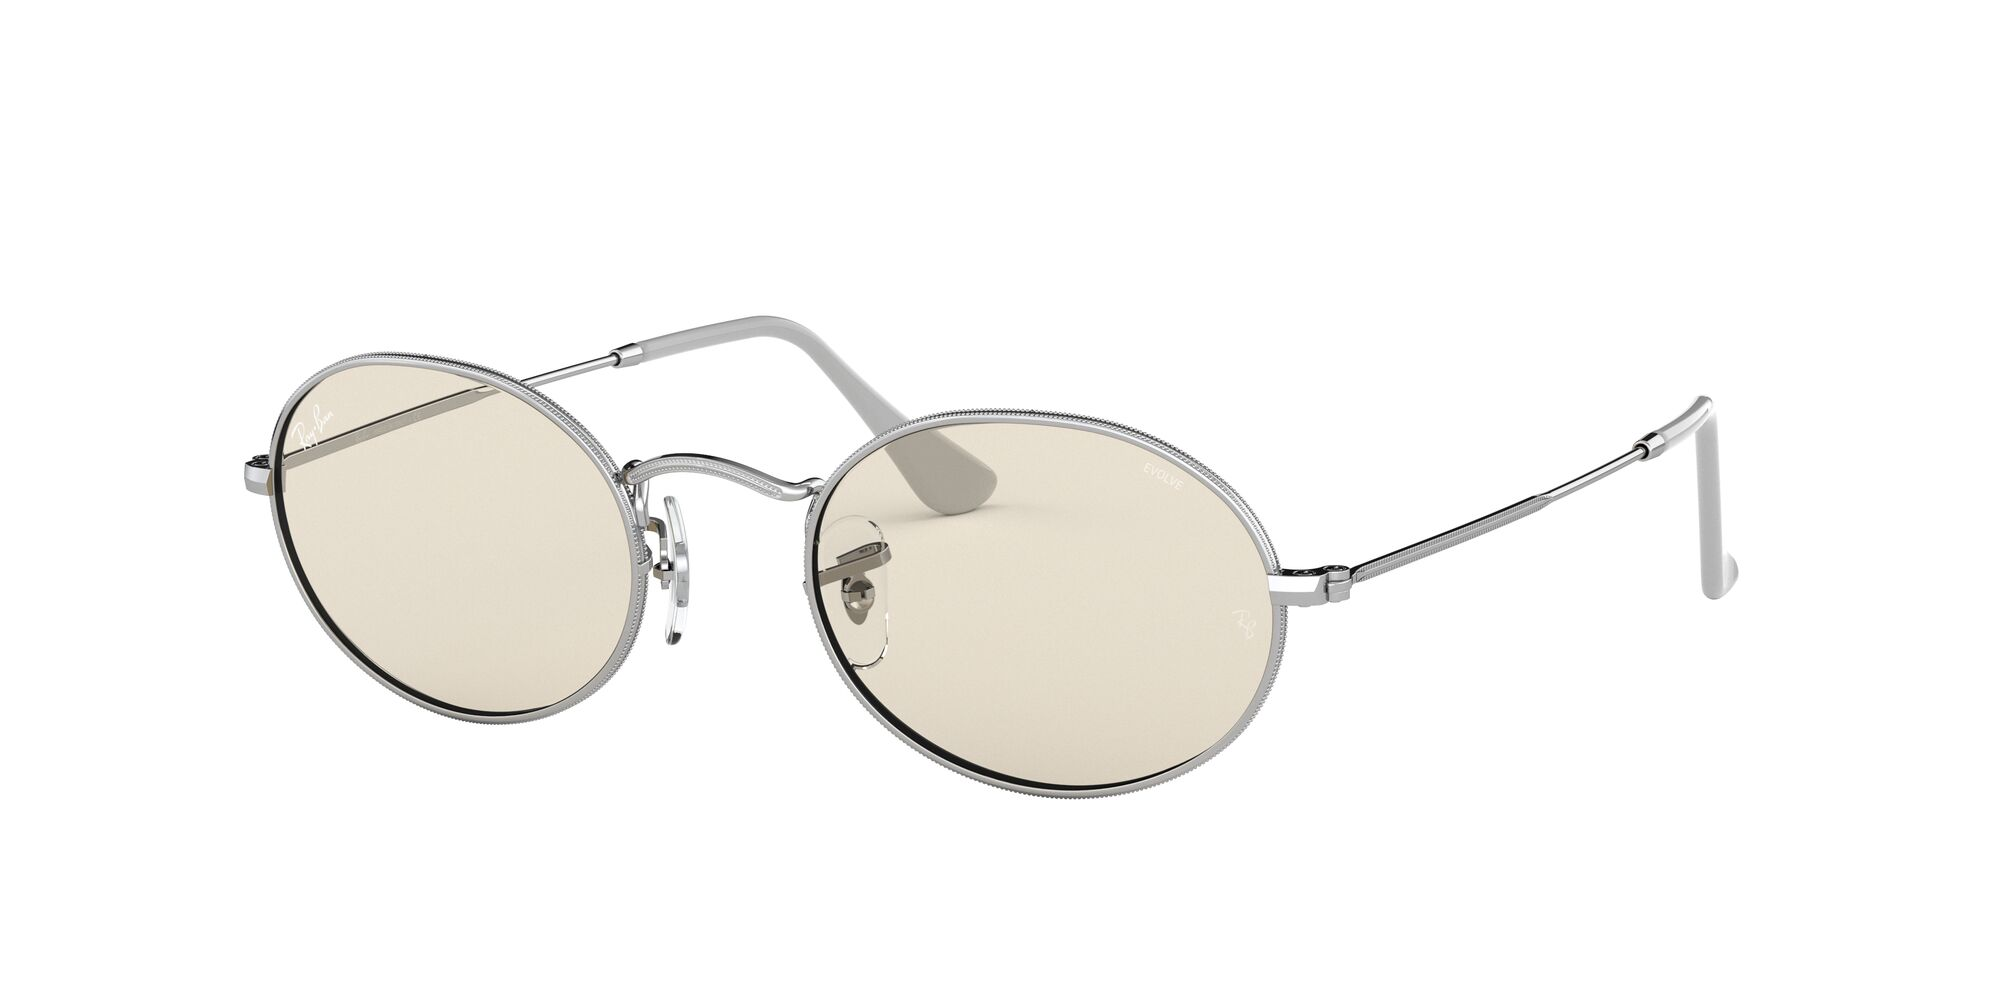 Angle_Left01 Ray-Ban Ray-Ban 0RB3547 003/T2 53/21 Zilver/Bruin